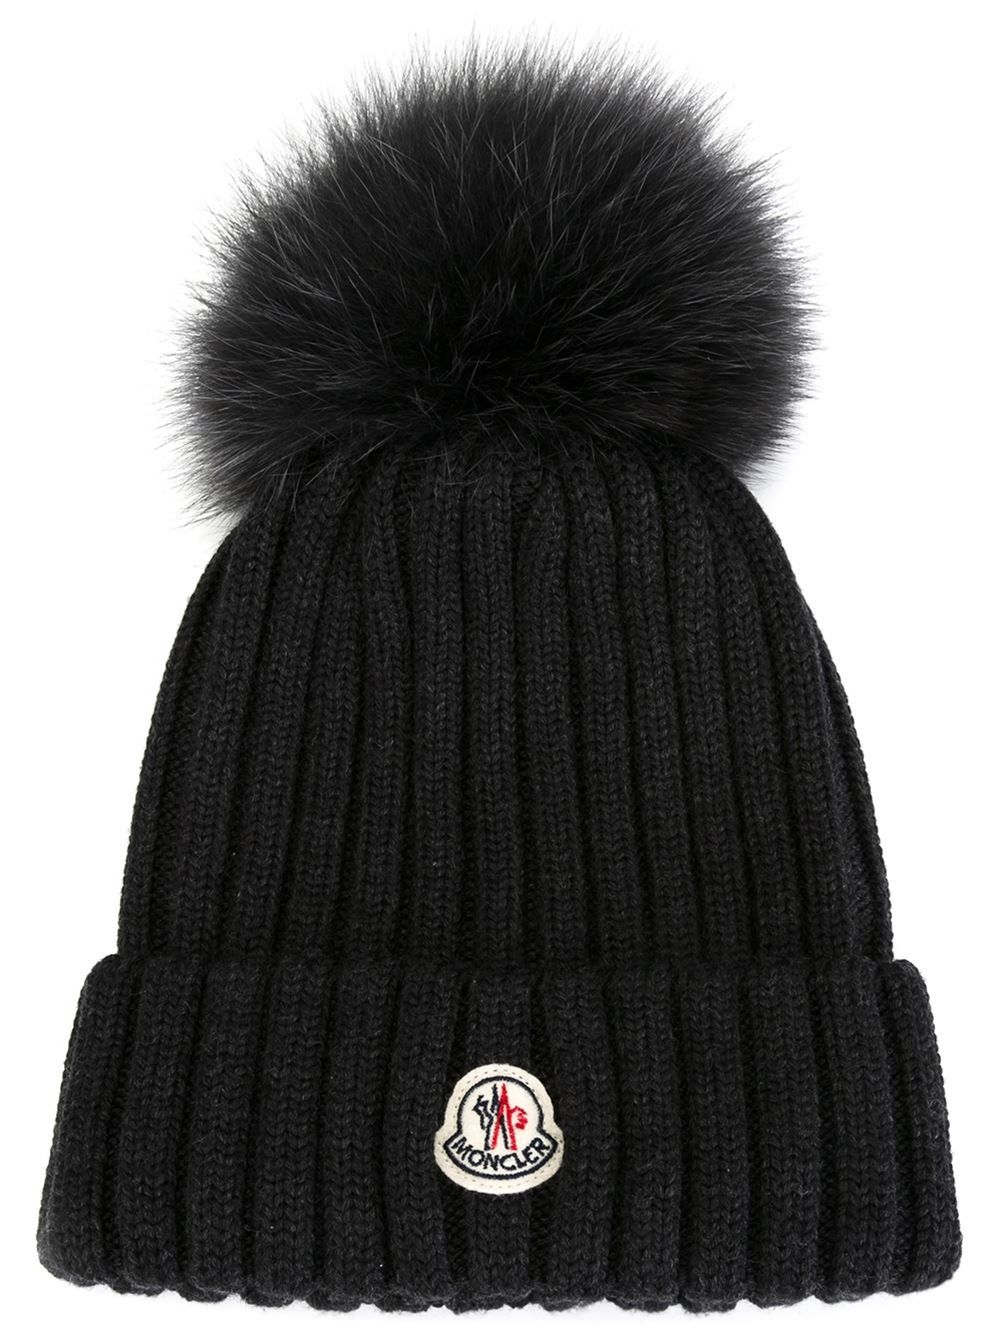 0b38e85c83b moncler  wool  hats  fur  black  newin  woman  fashion www.jofre.eu ...